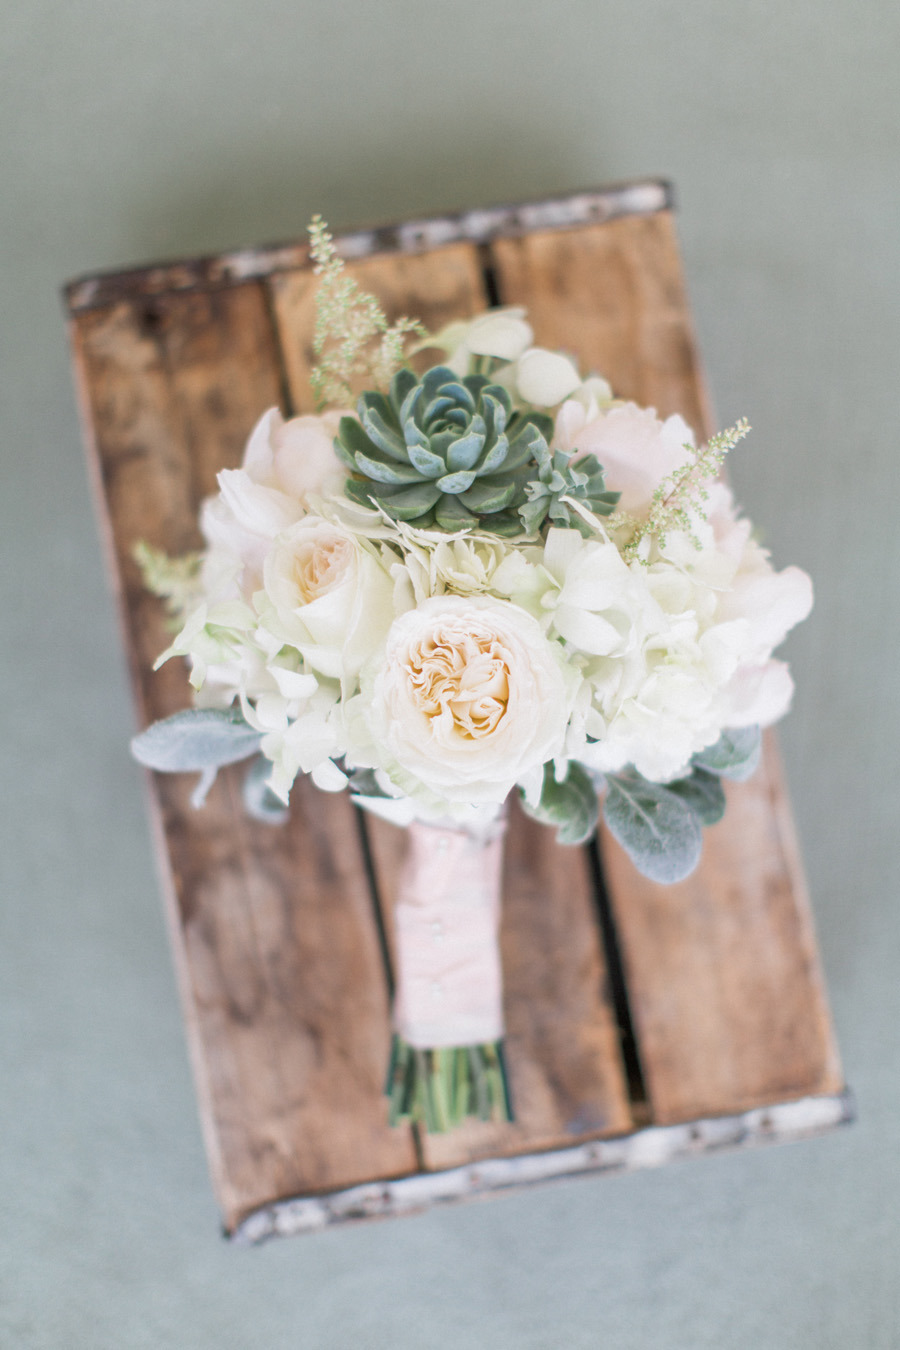 Small Flower Table Decorations